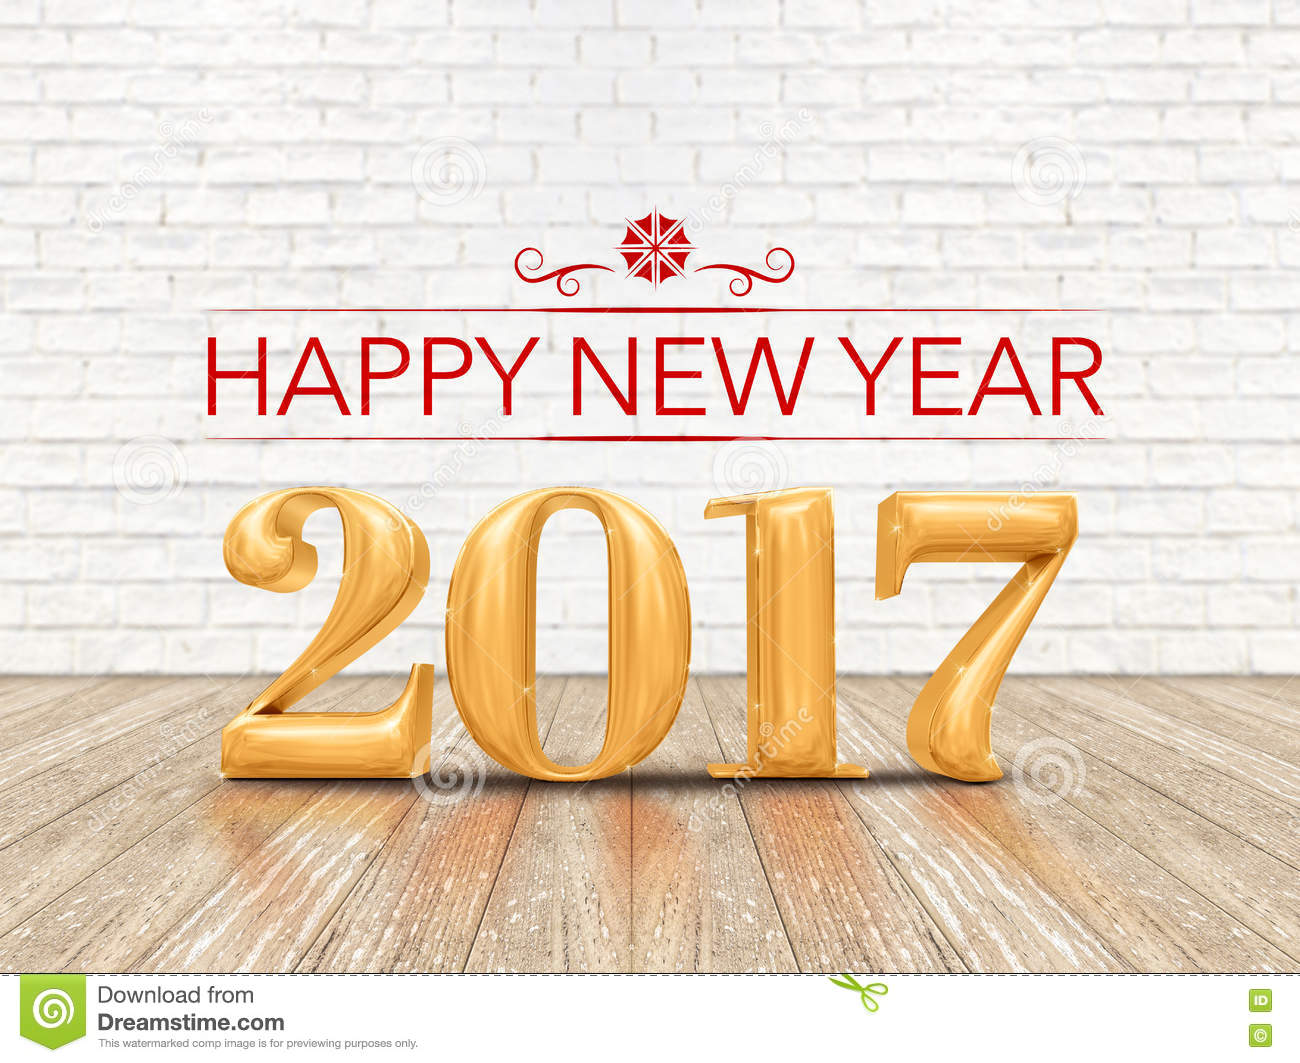 Happy New Year 2017 3d Rendering Gold Color Number On